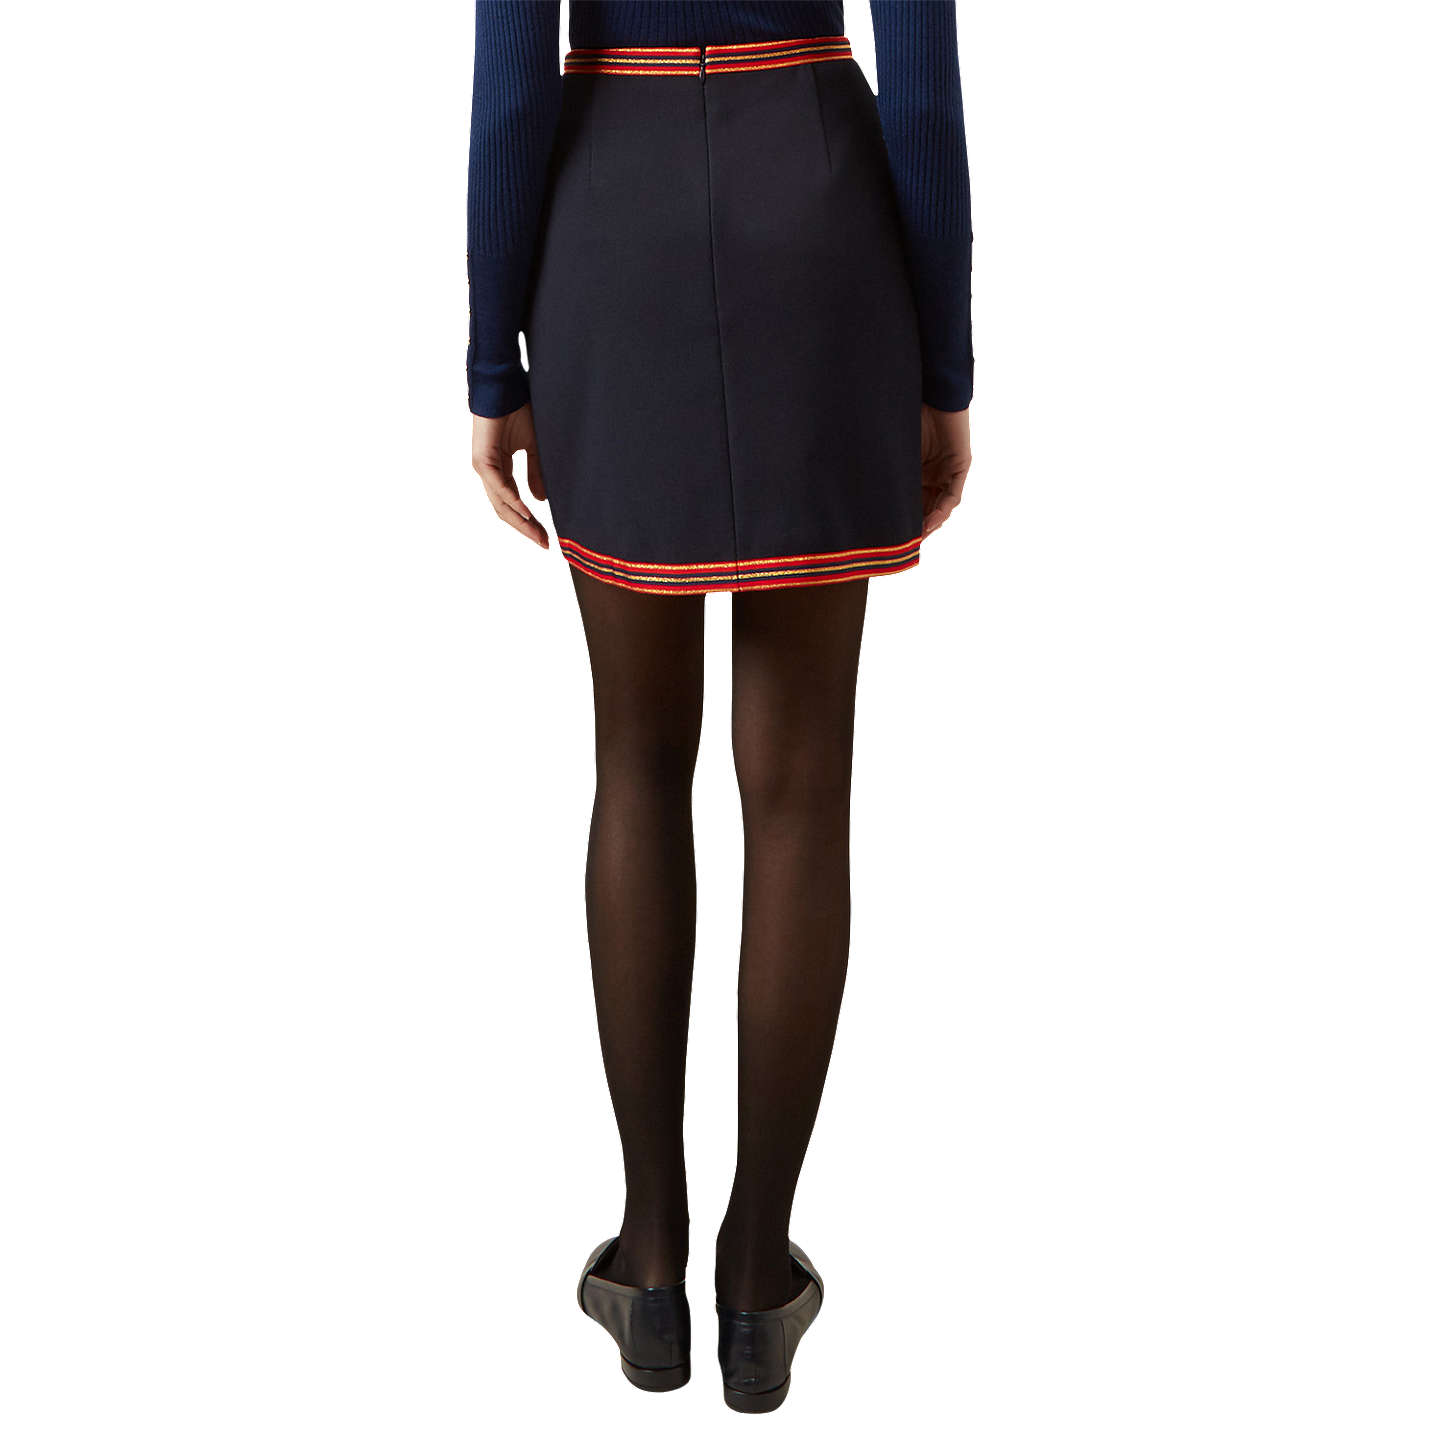 BuyHobbs Marisa Cotton Rich Mini Skirt, Navy/Multi, 16 Online at johnlewis.com